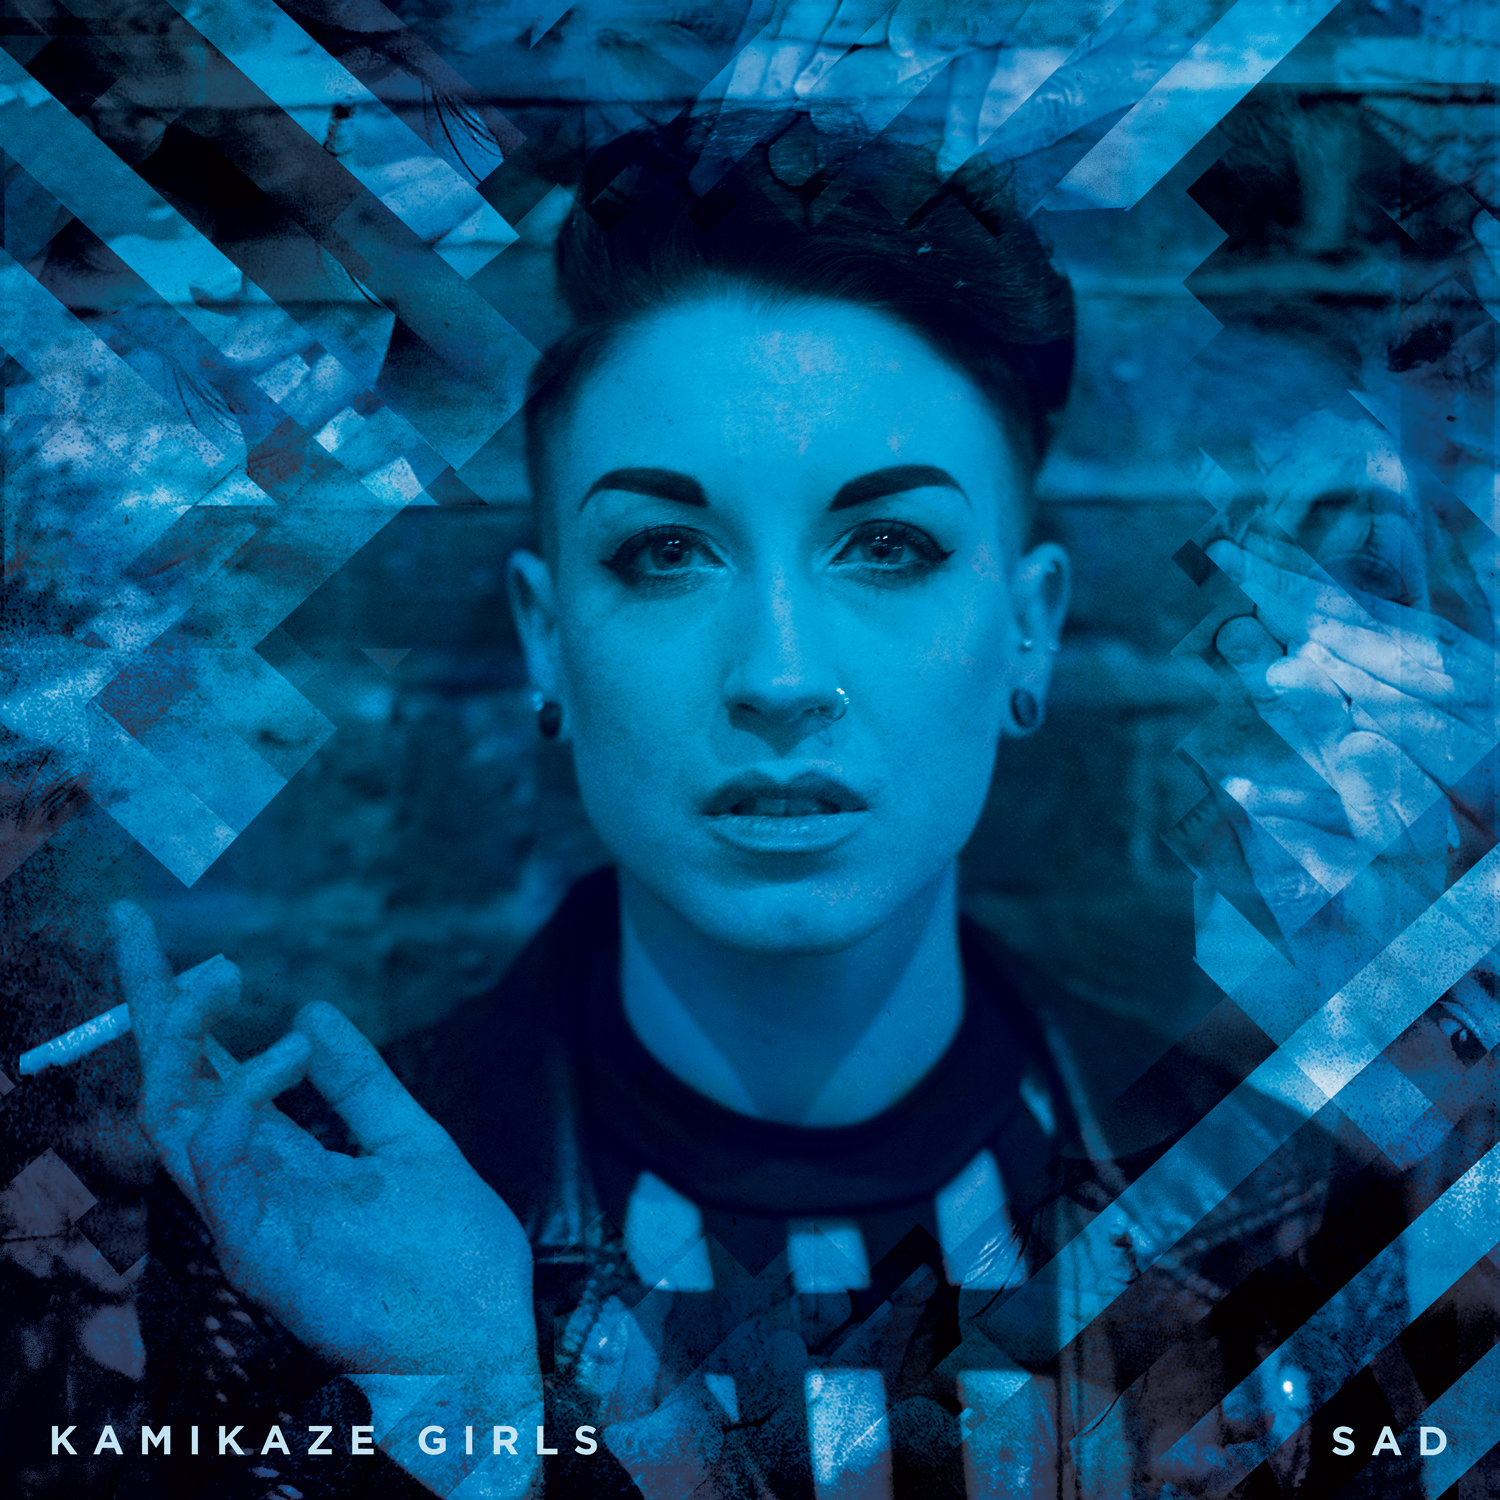 Kamikaze Girls Sad